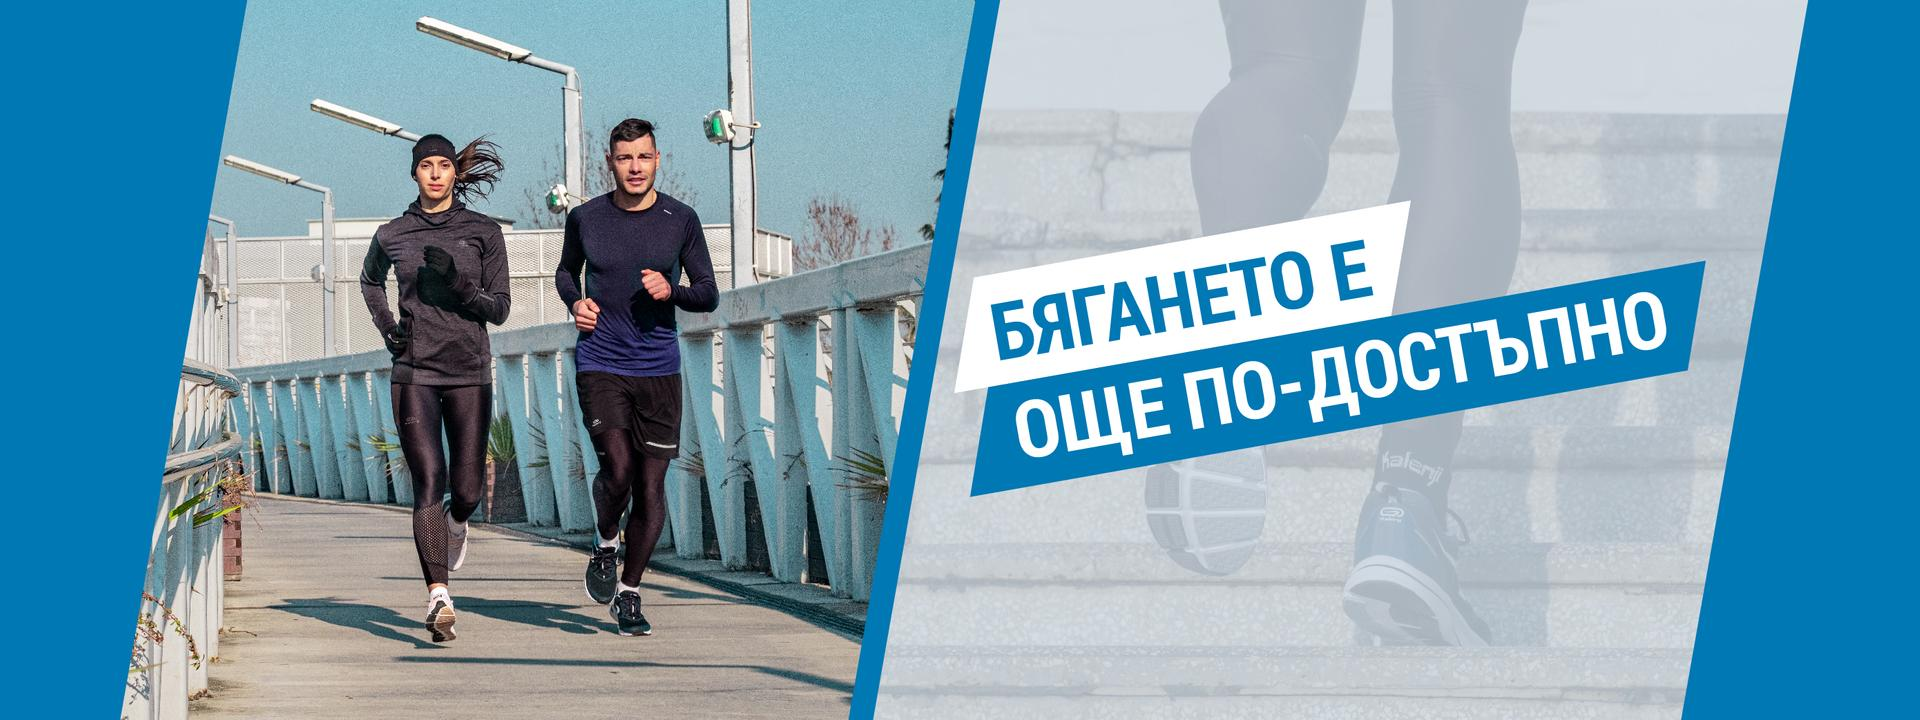 running_campaign_banner-02.jpg